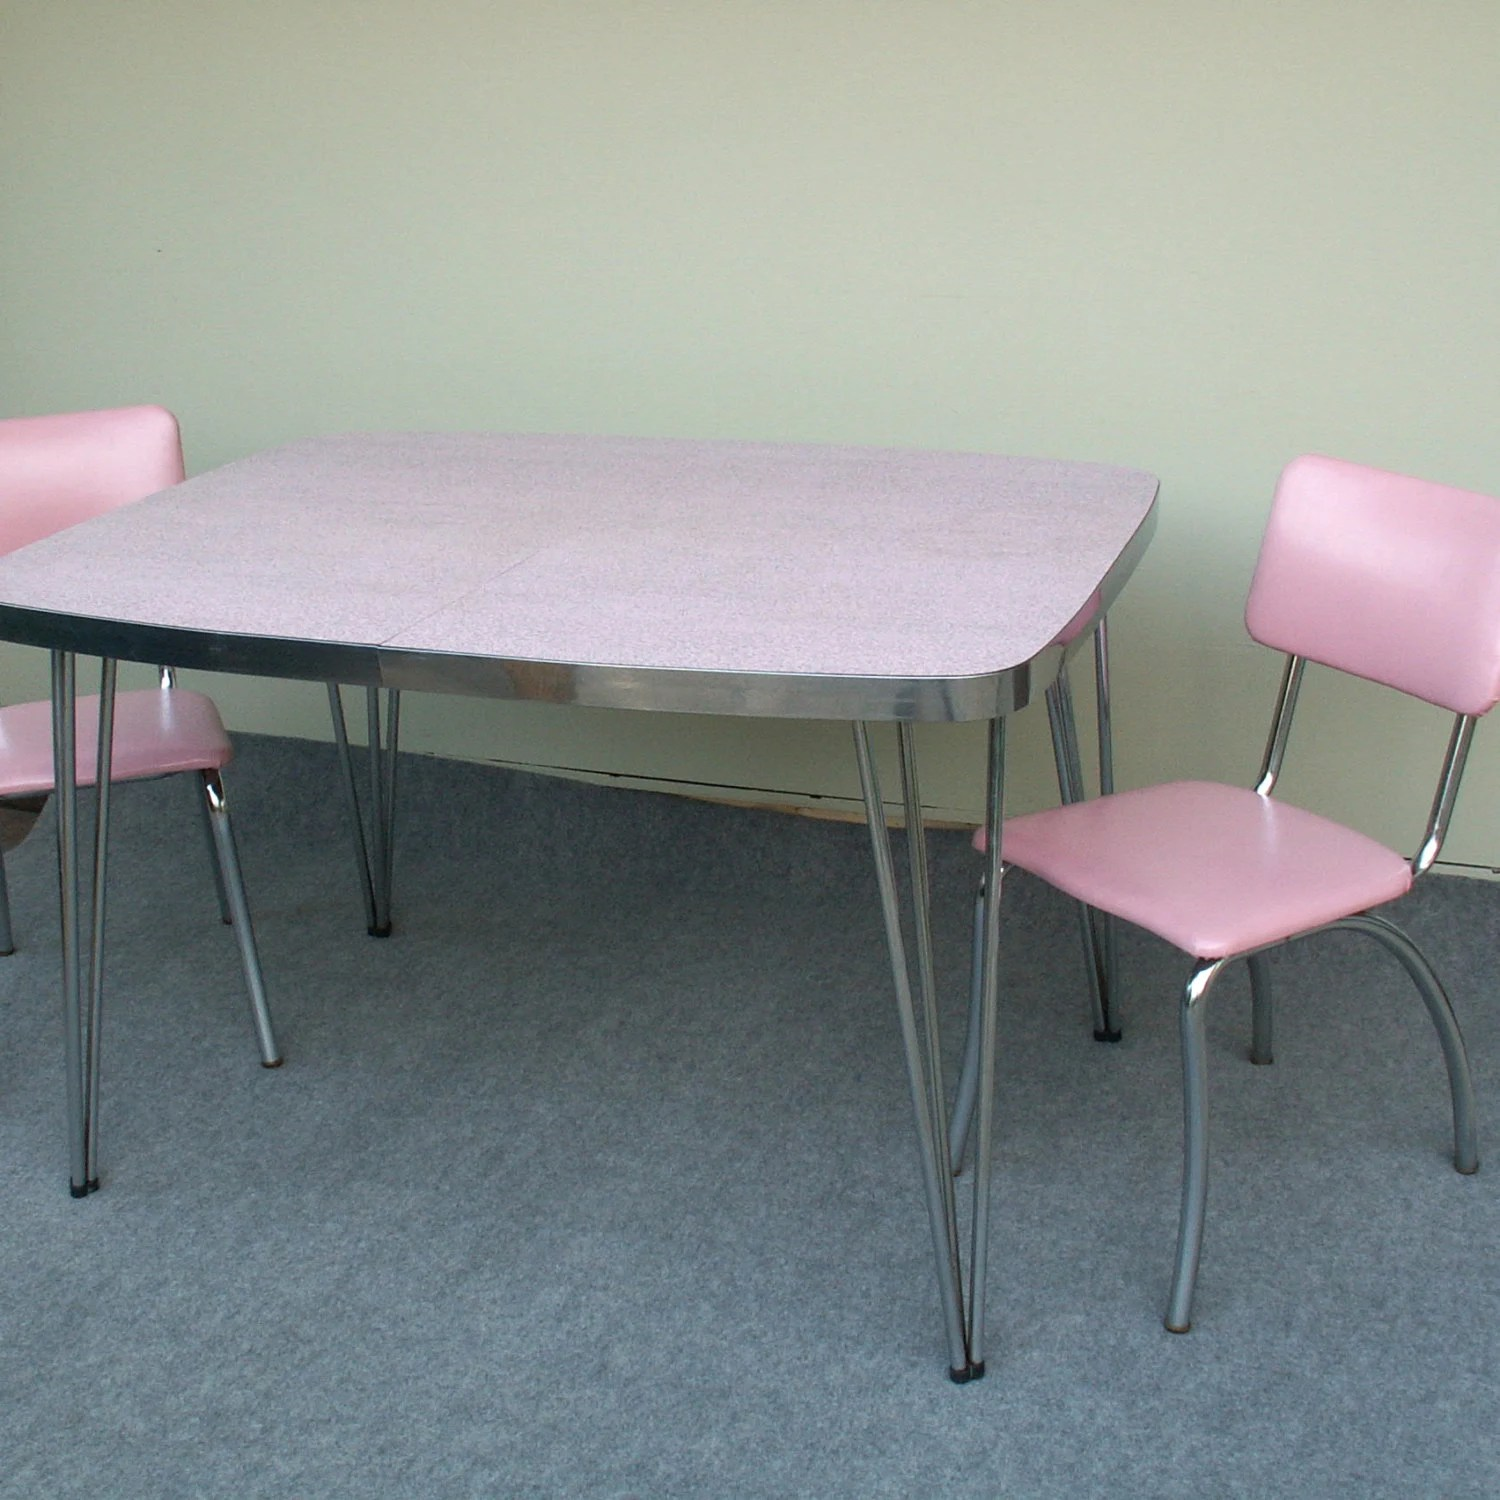 Formica Table And Chairs Vintage Pink And Gray Formica Table With Two Chairs